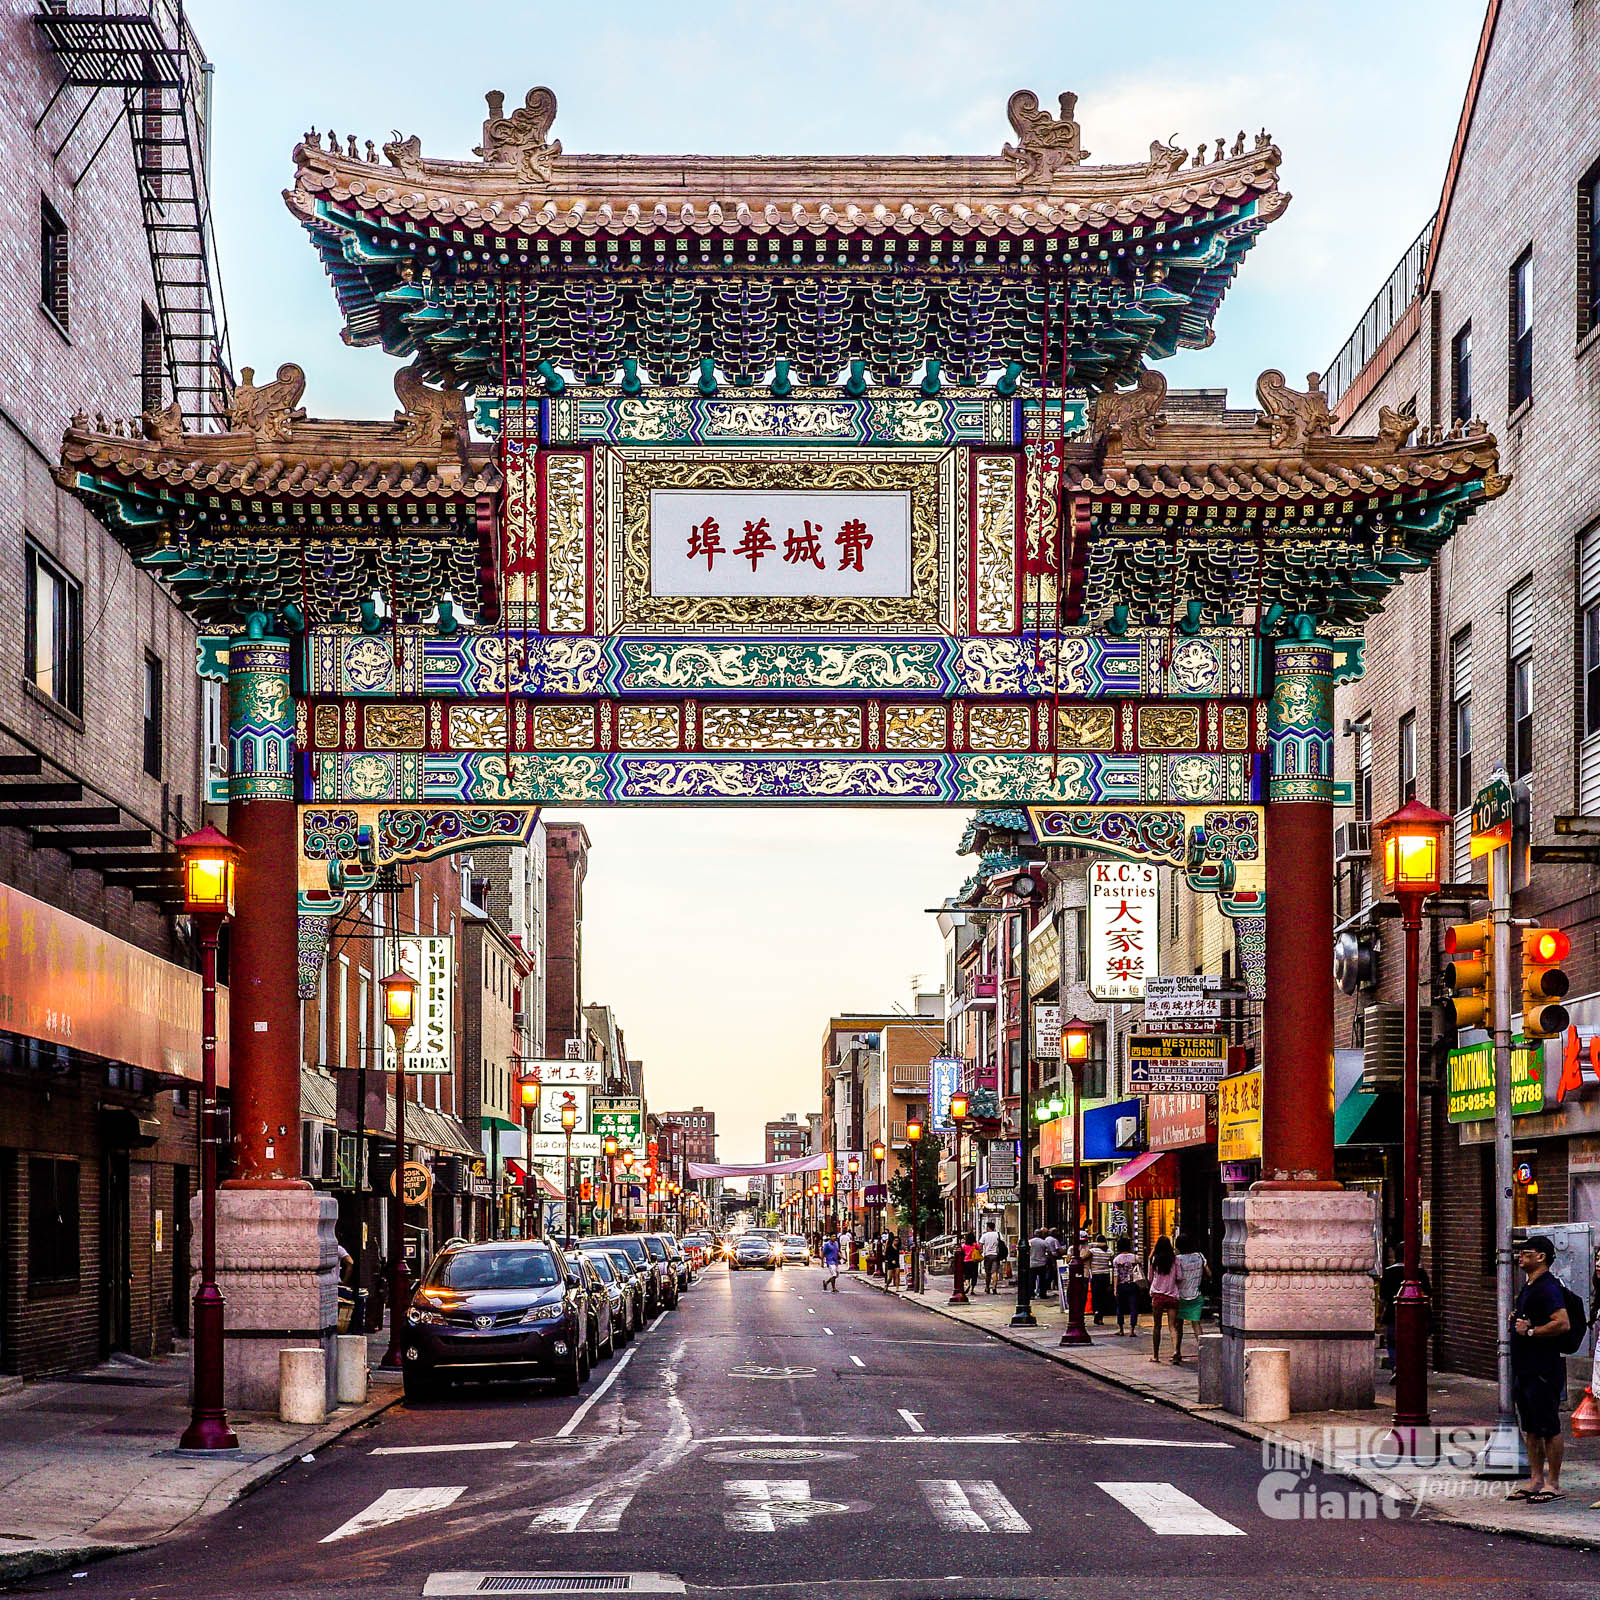 Chinatown - Philly